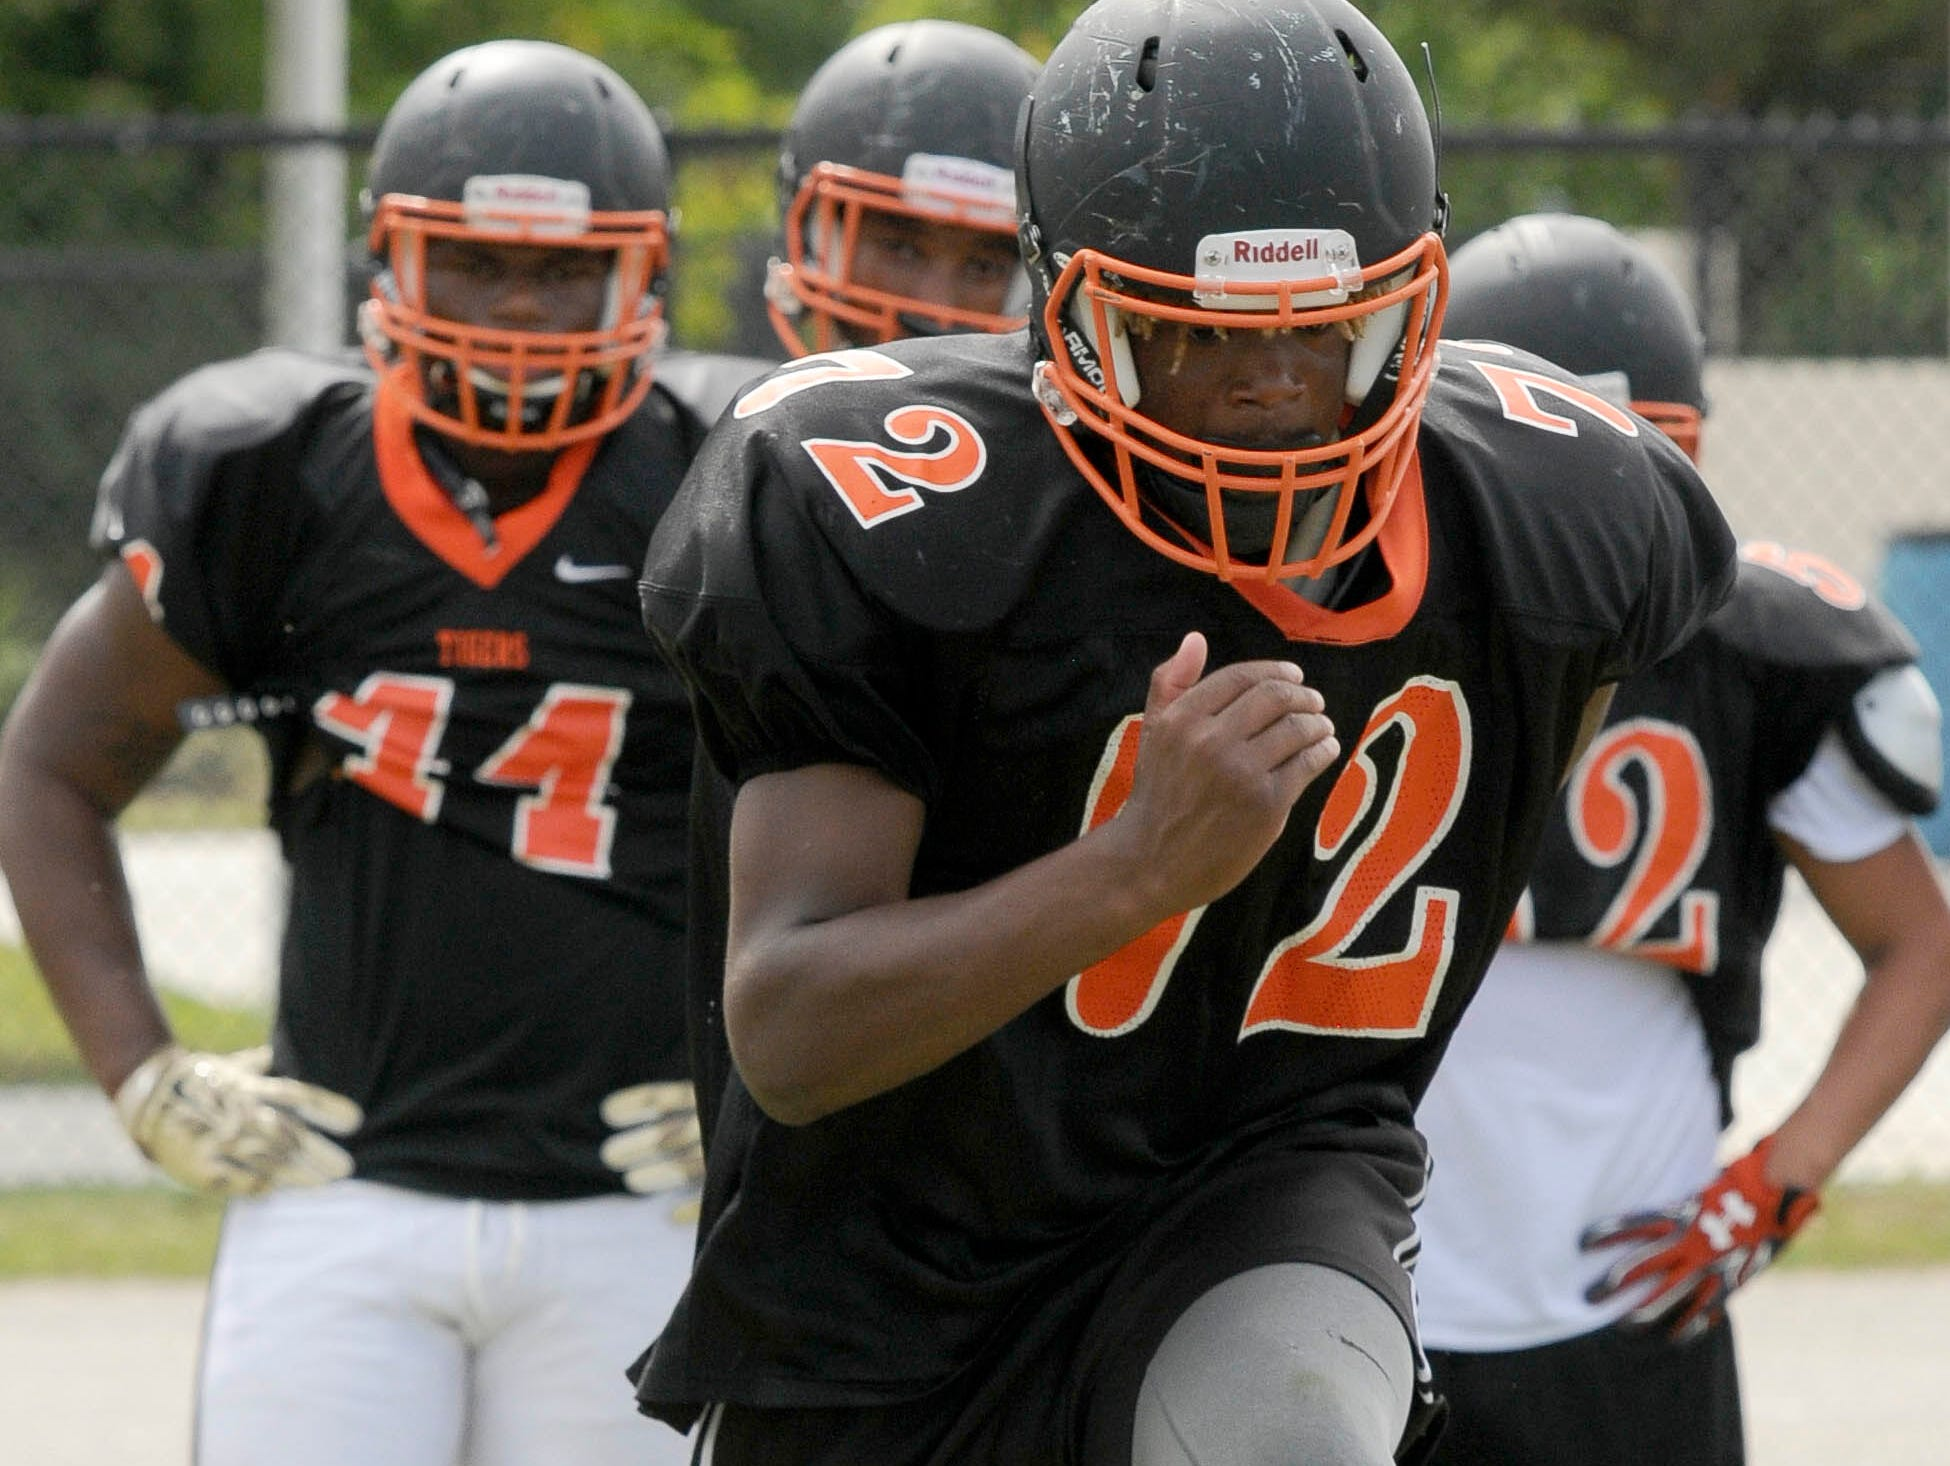 Football players at Cocoa High School work on their technique during practice.